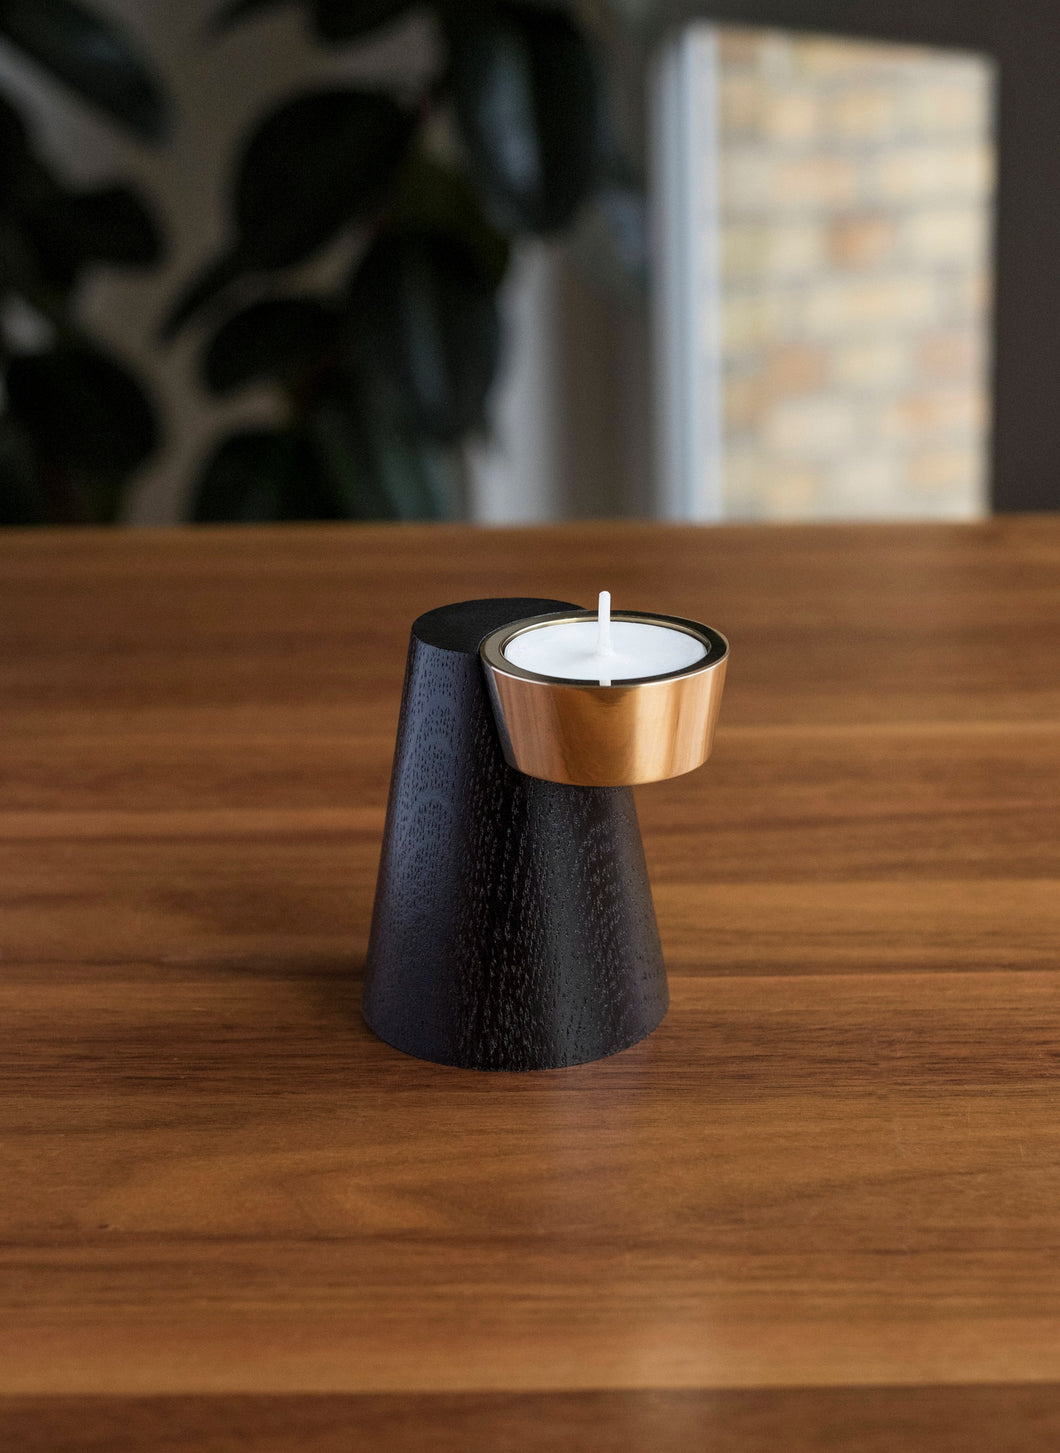 T- Candle Holder in Wood and Brass Stand for Diwali and Home Decoration